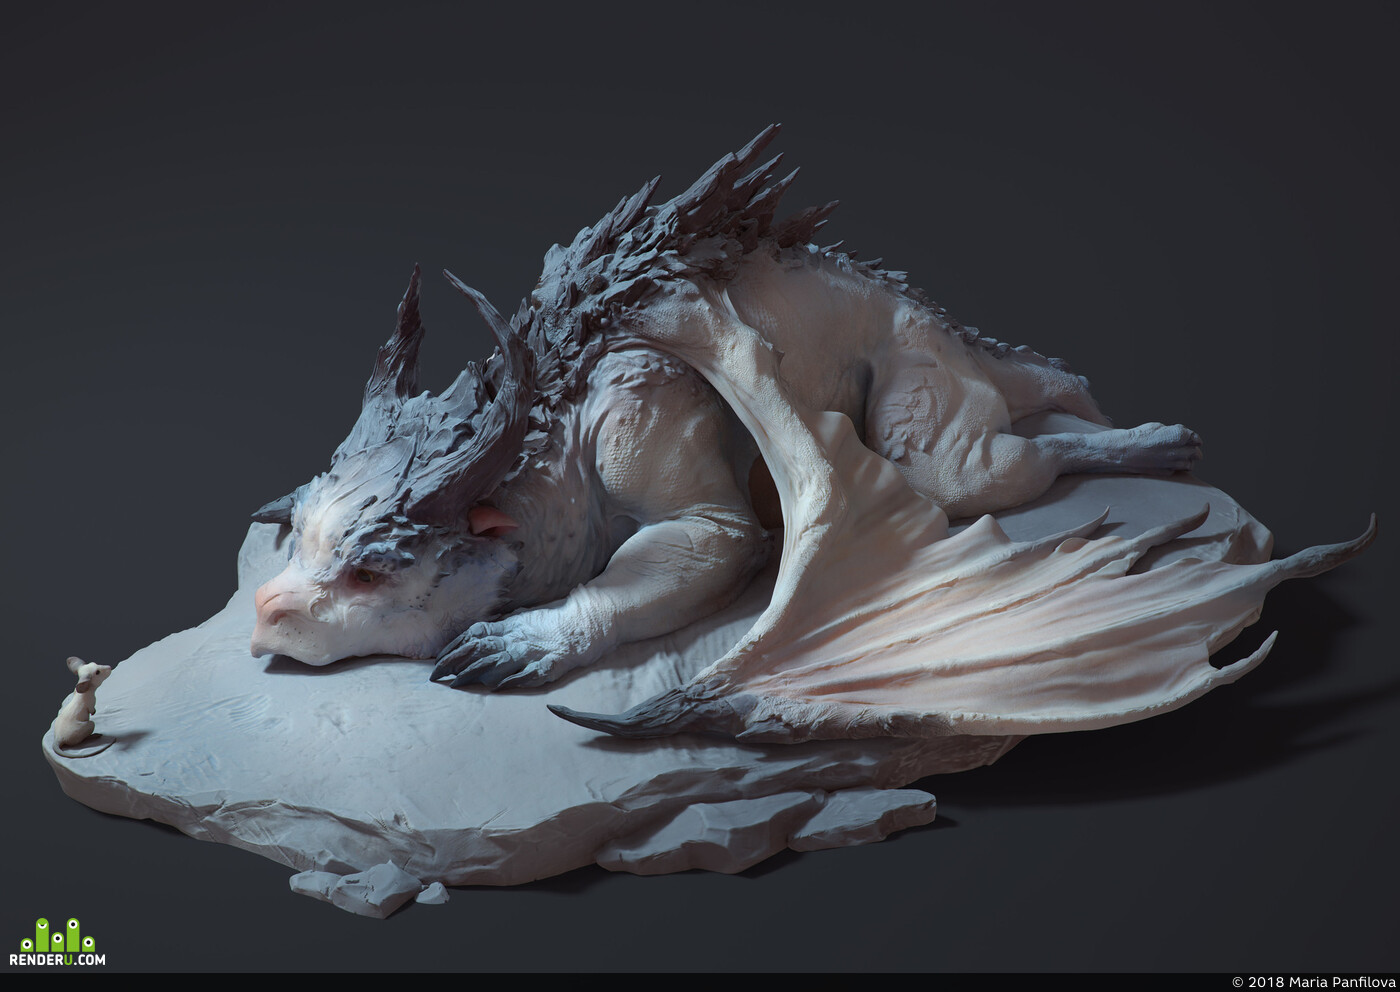 dragon, Mouse, fantasy, sculpture, China